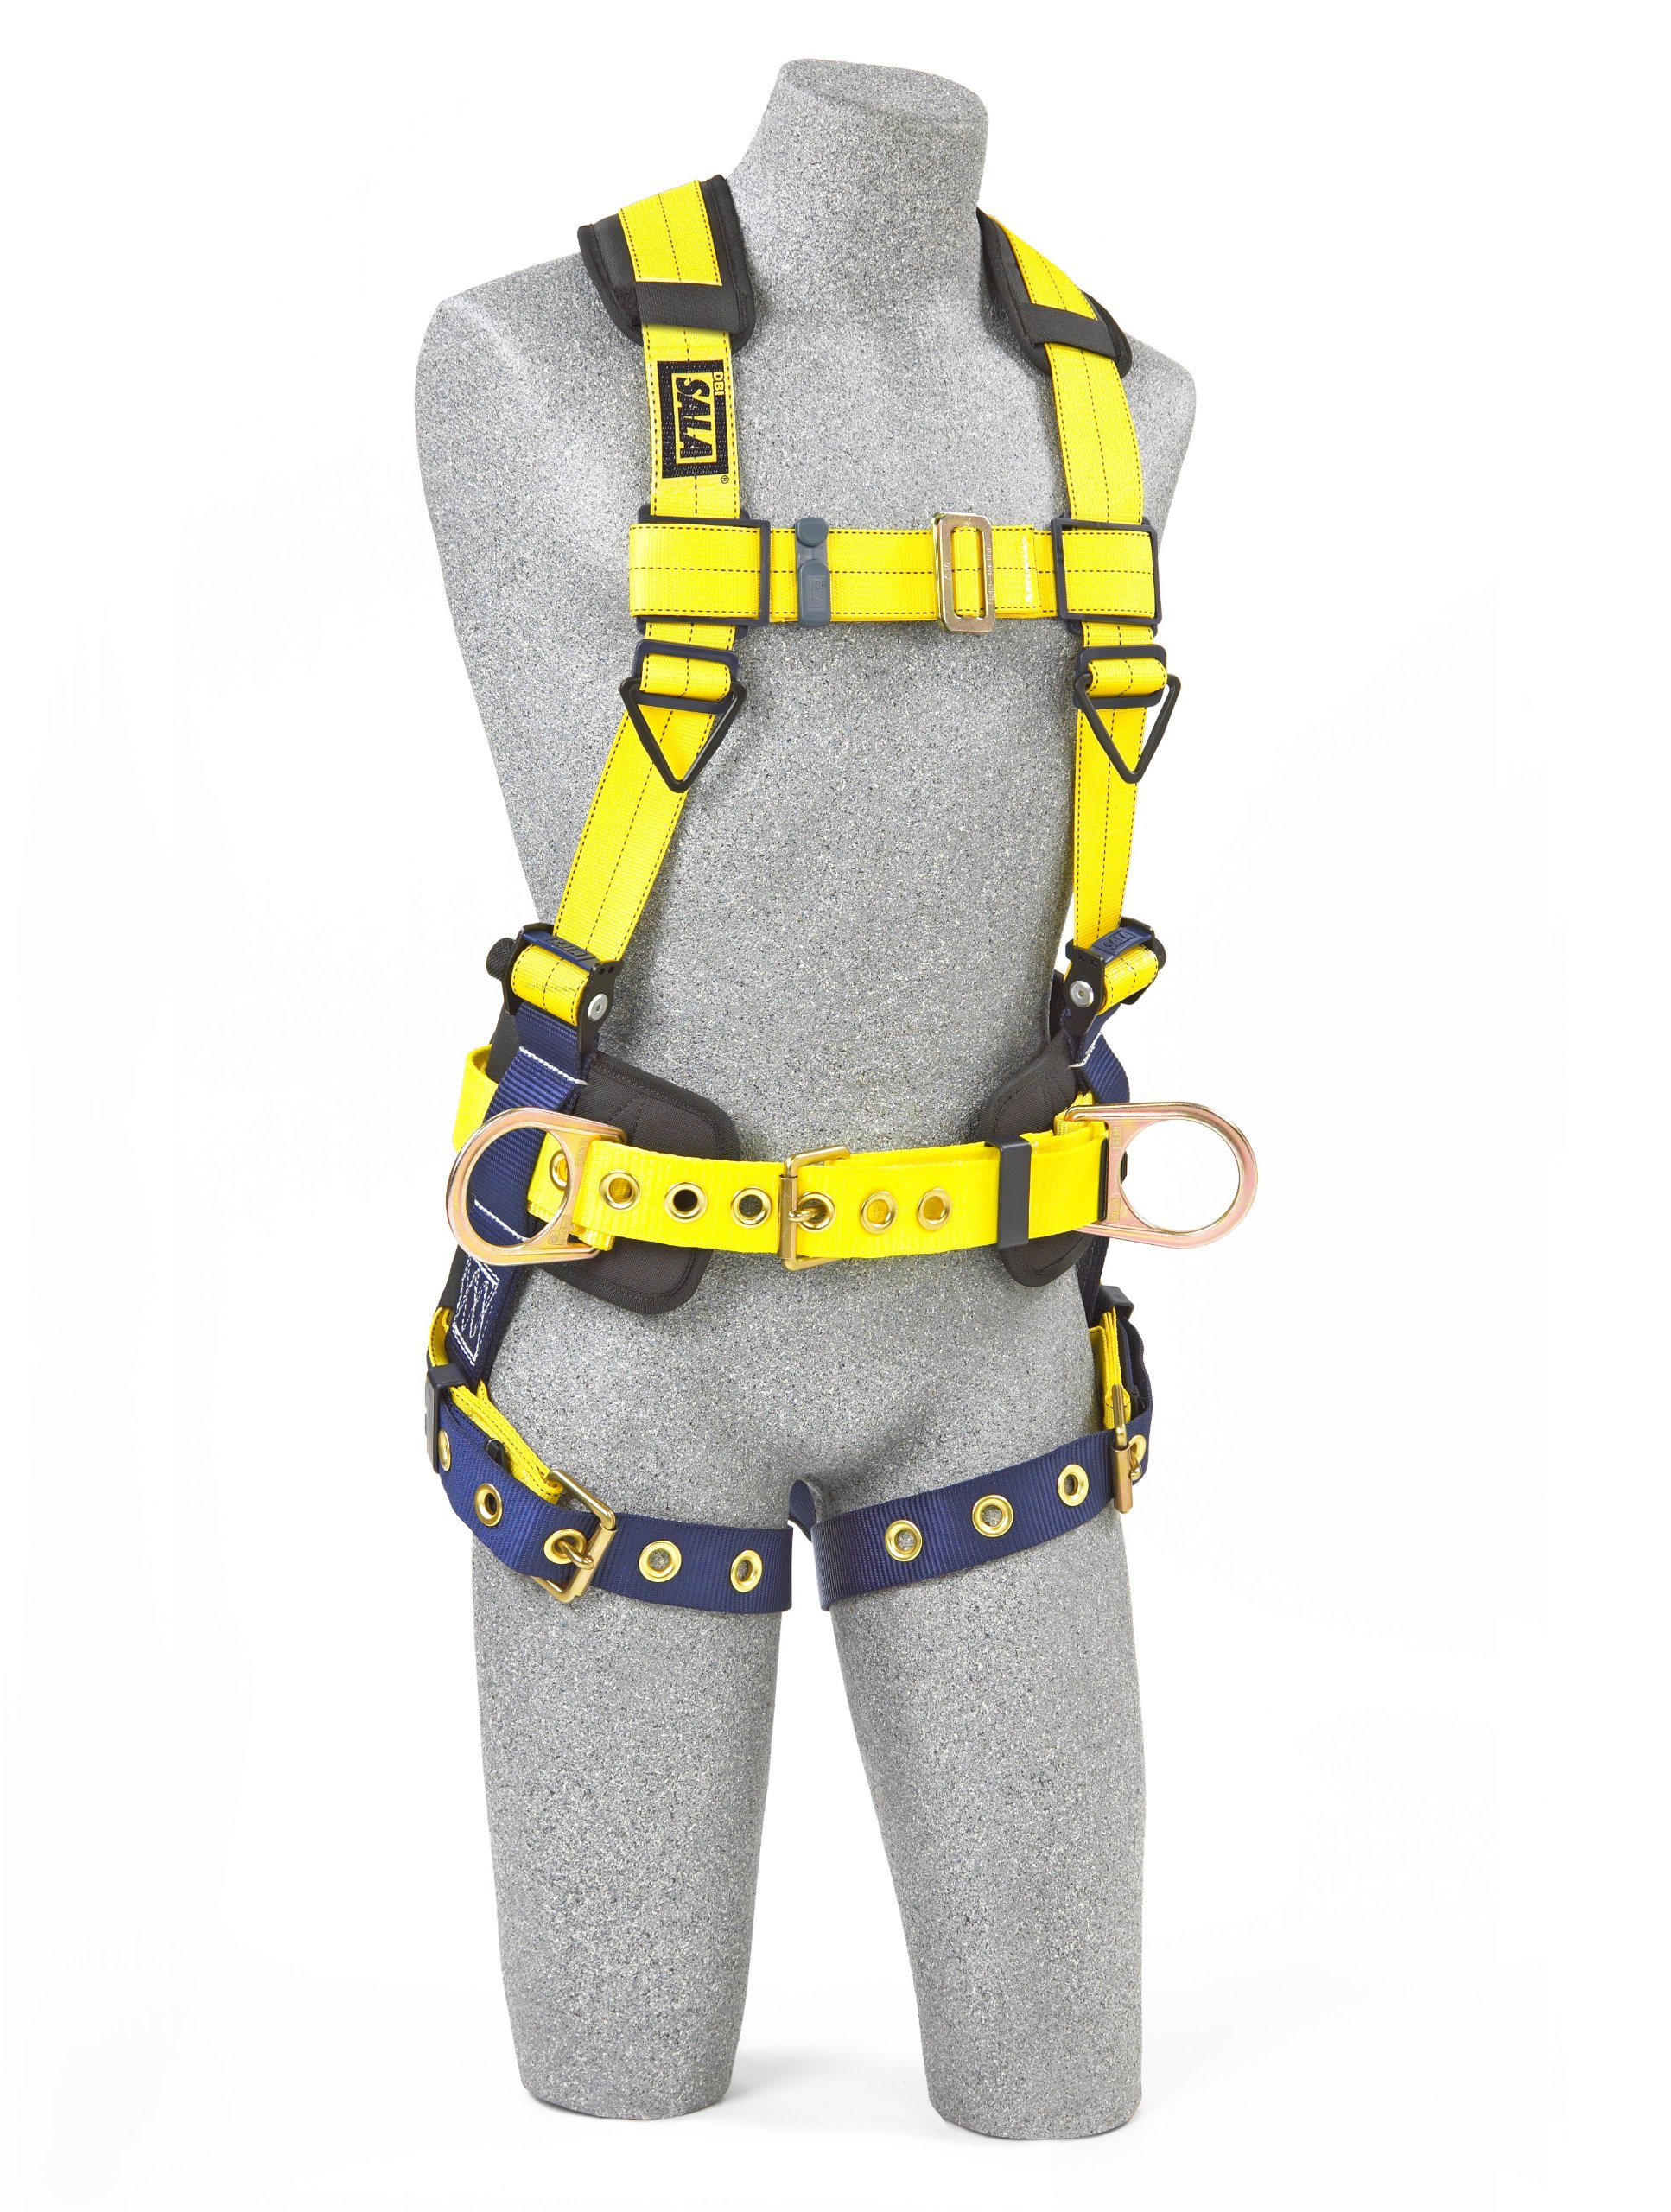 3M DBI-SALA Delta 1101656 Construction Harness, Back/Side D-Rings, Belt w/Sewn-In Back & Shoulder Pads, Tongue Buckle Leg Straps, X-Large, Navy/Yellow by 3M Personal Protective Equipment